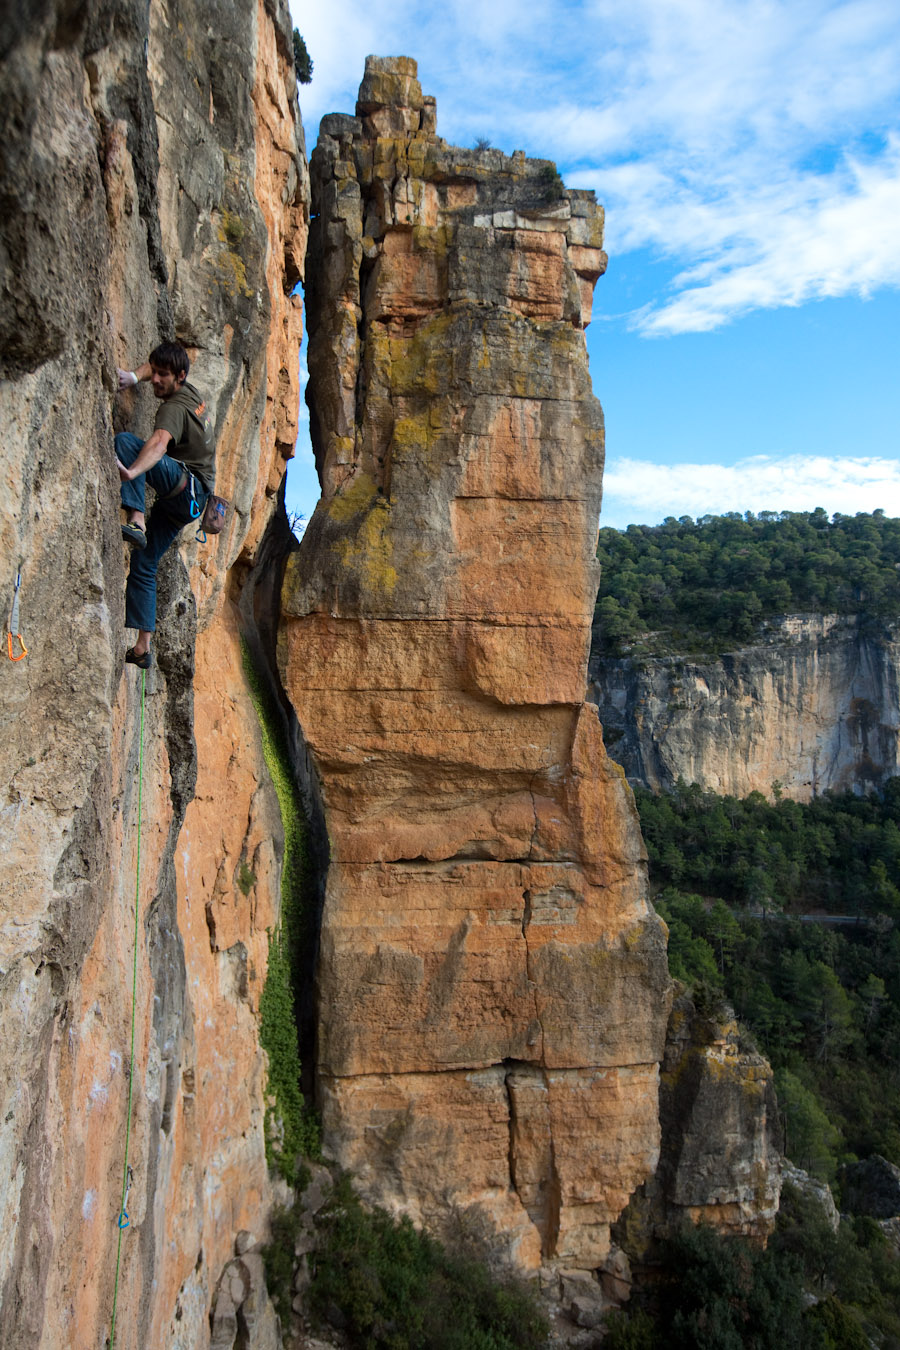 Climber enjoys the sticky conditions in the sun at El Pati sector in Siurana, Spain.